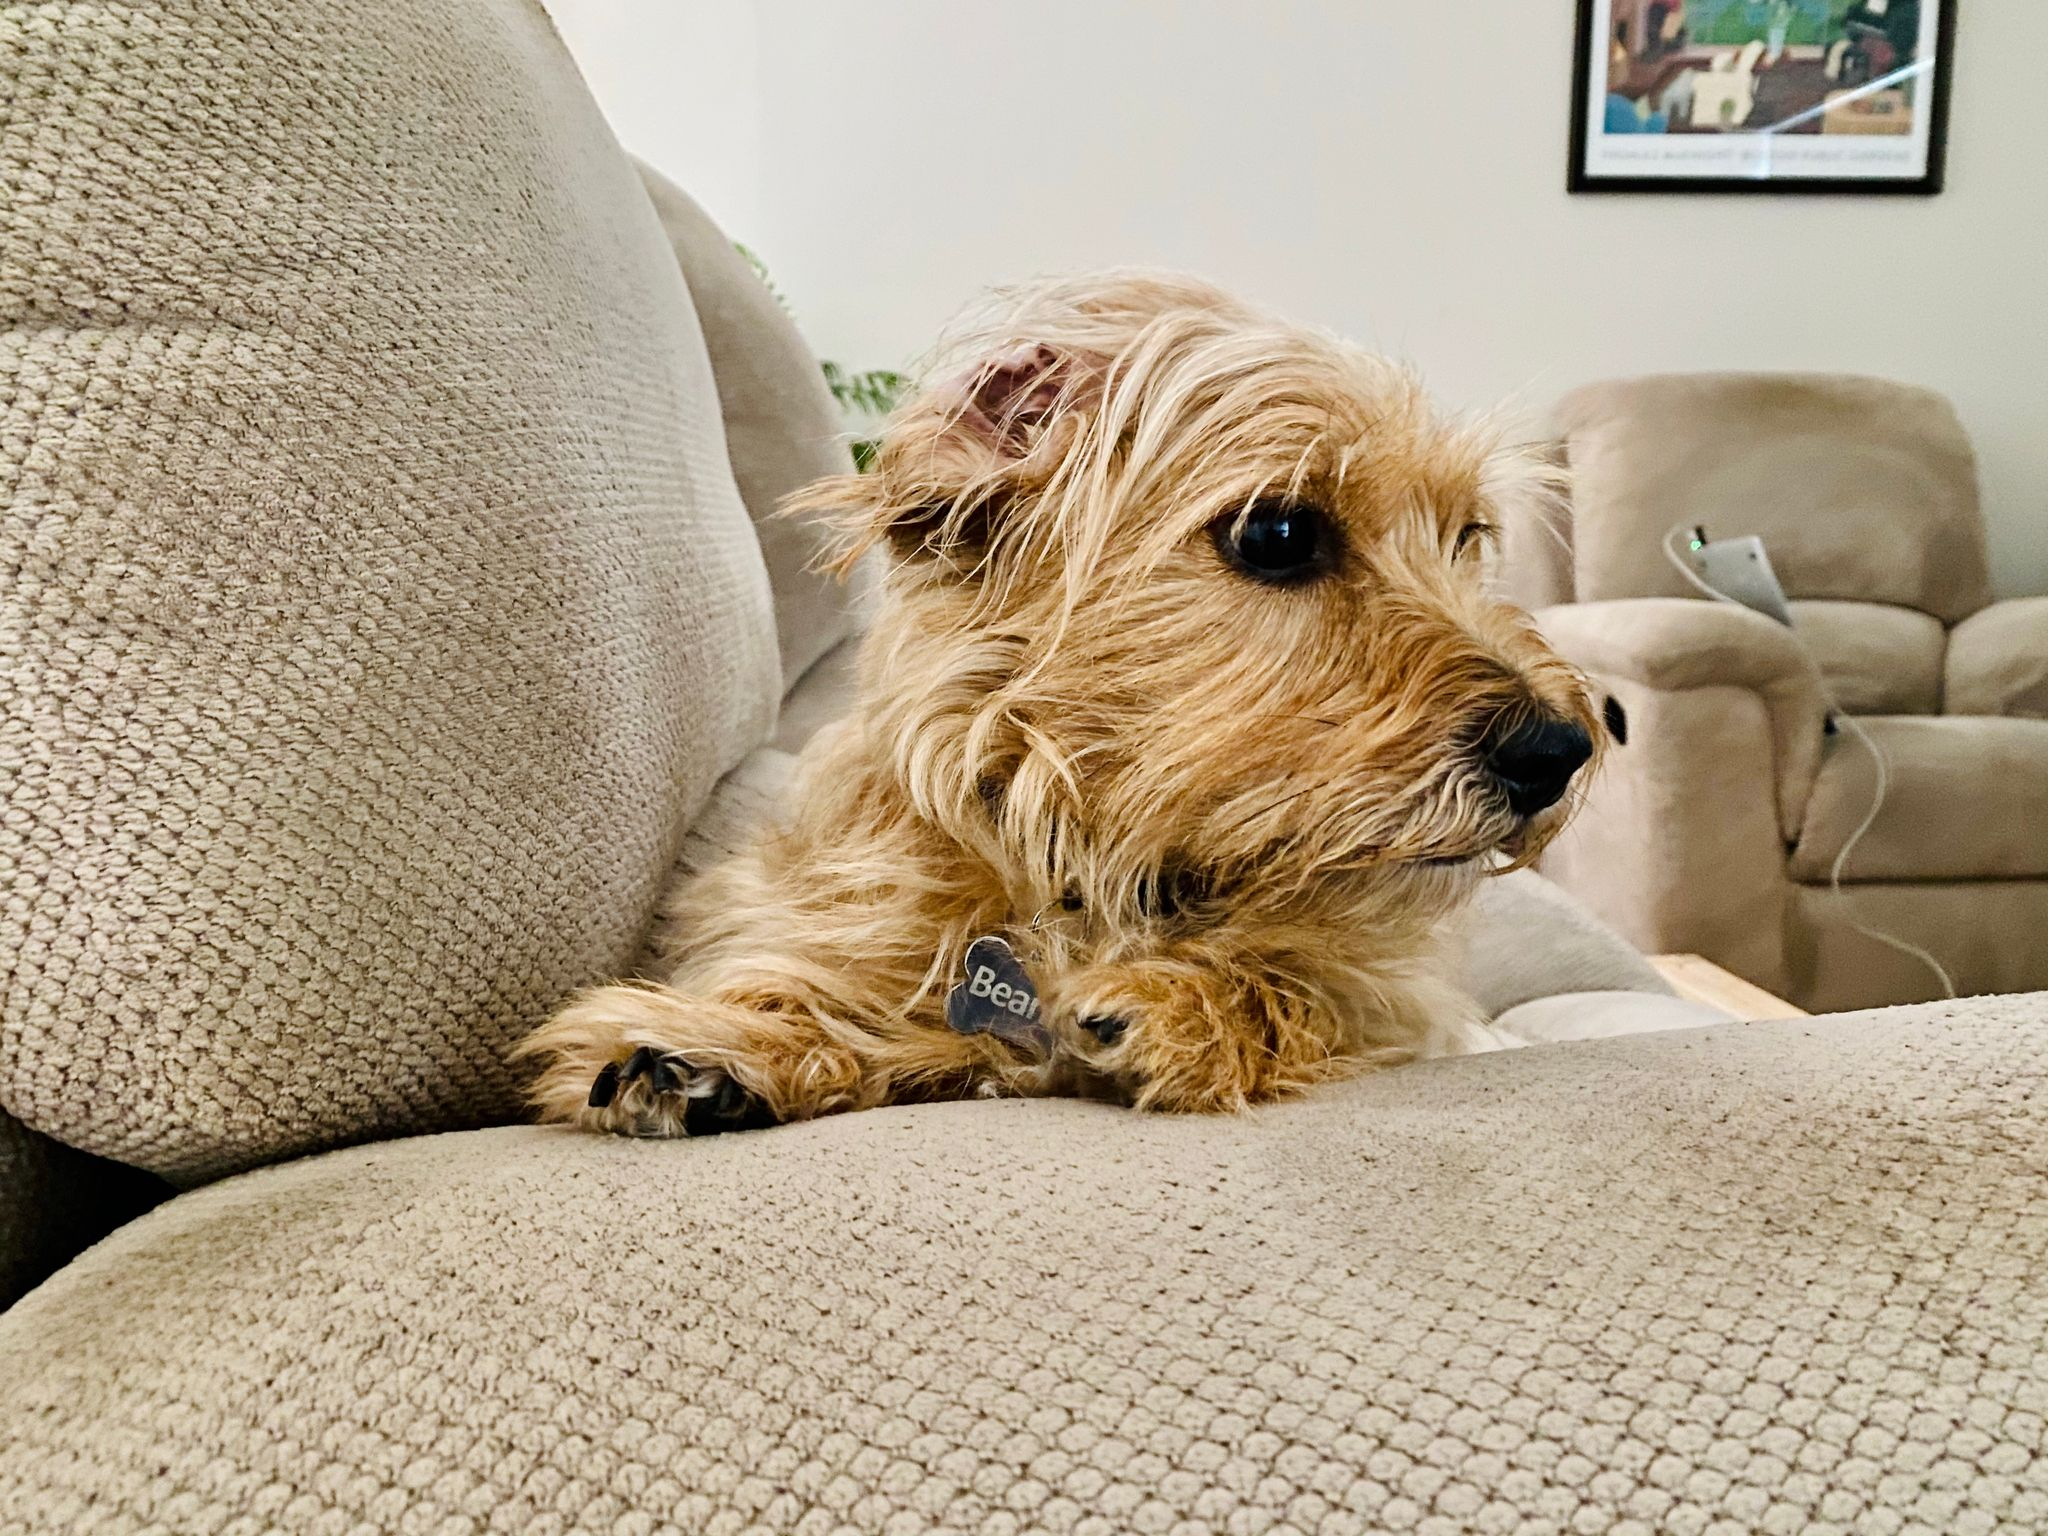 A small scruffy blonde dog with one ear inside out, sitting up with his front paws on the arm of a lounge looking away from the camera to the right where the front door is.